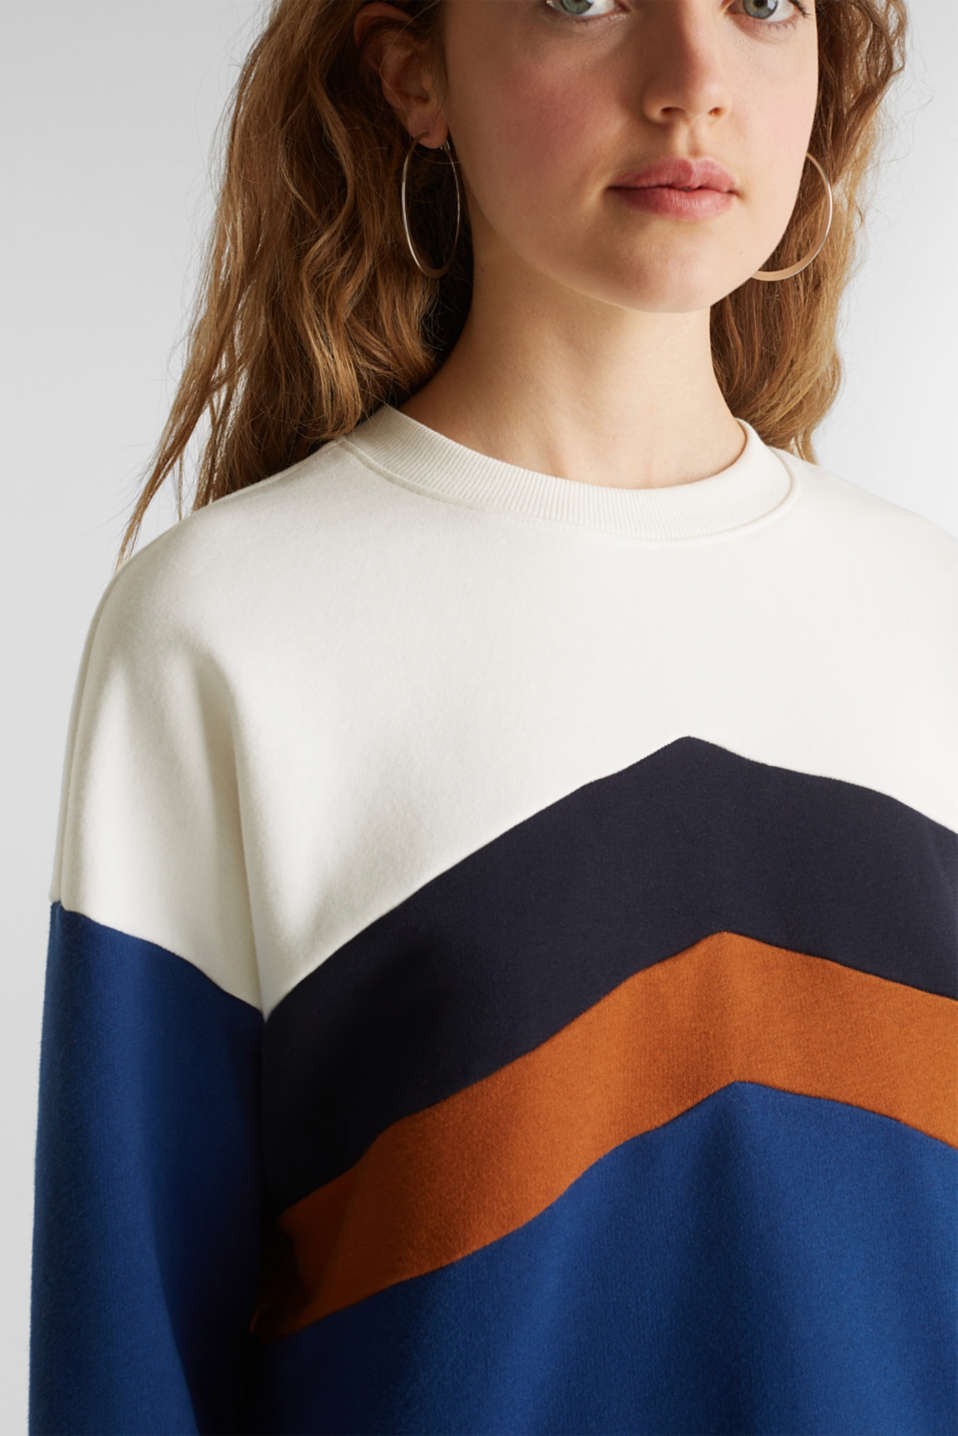 Sweatshirt with a colour block design, DARK BLUE, detail image number 2